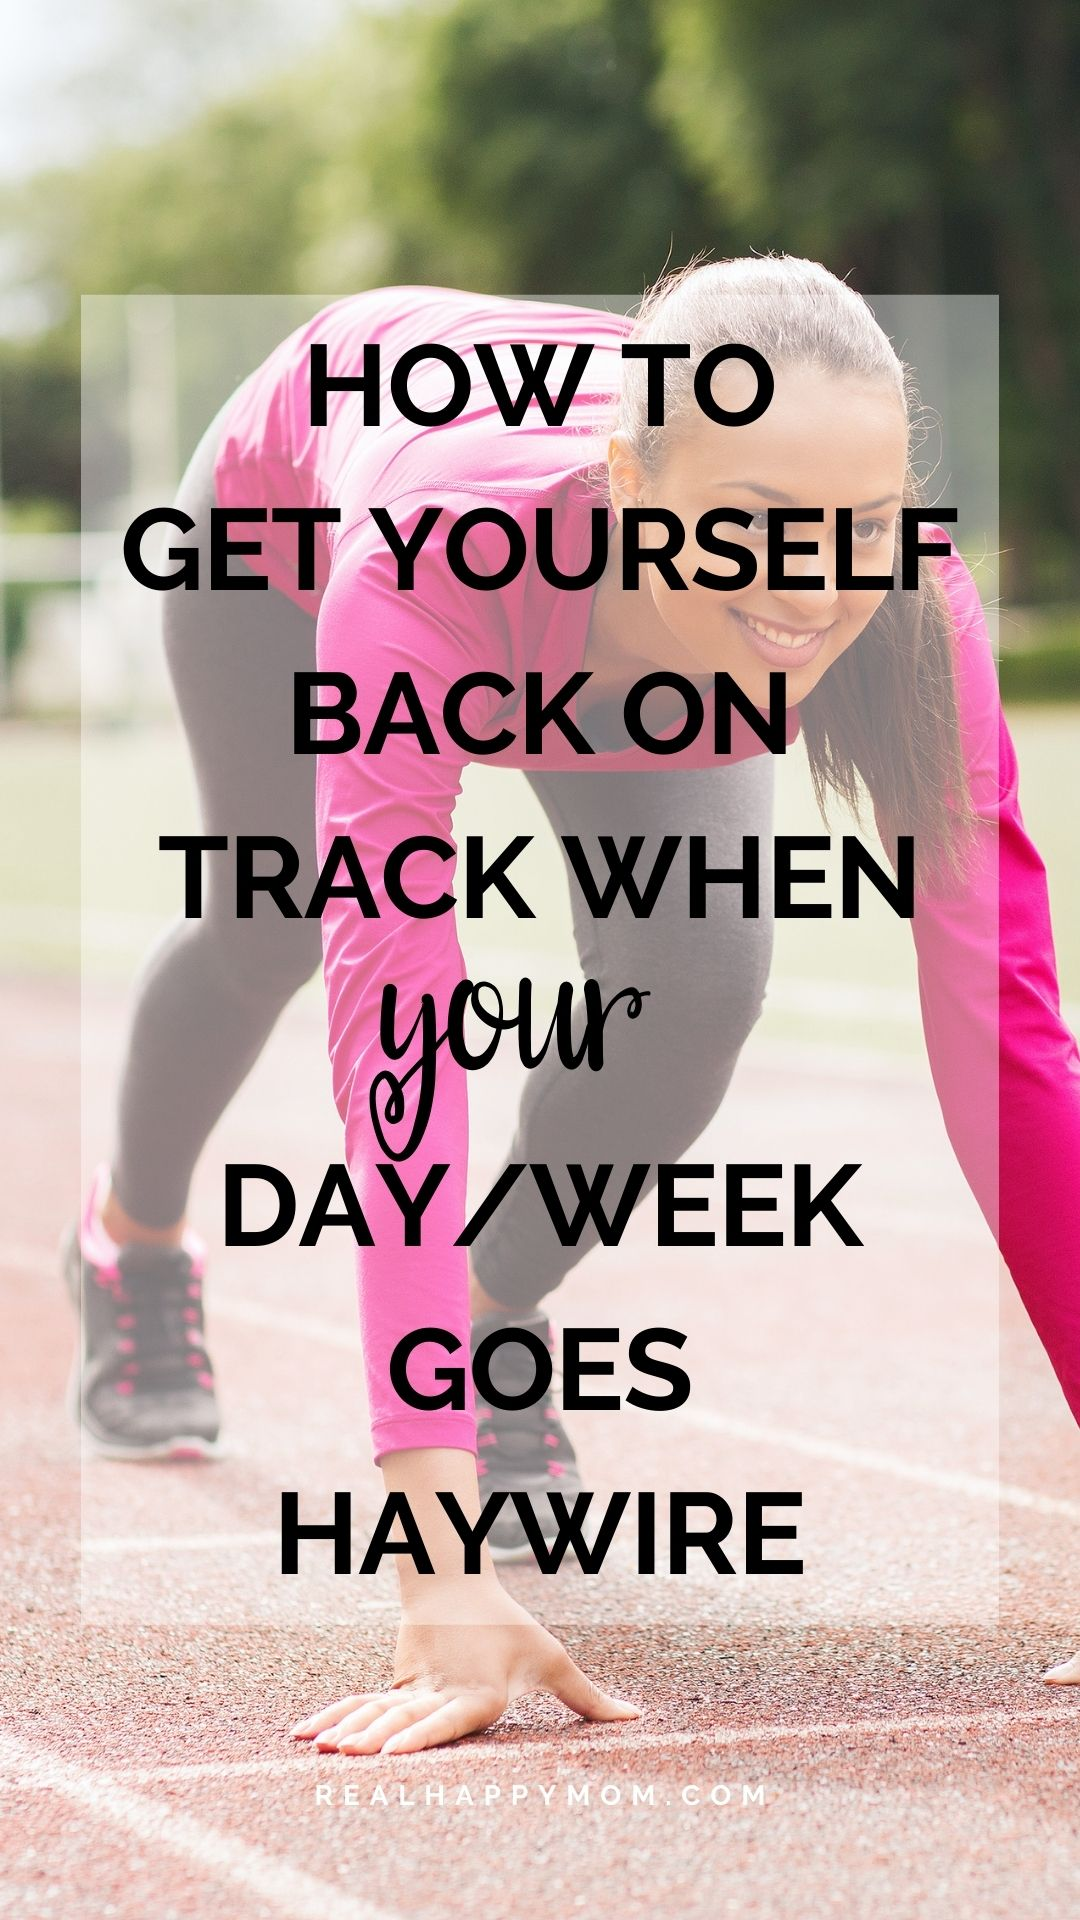 How to Get Yourself Back on Track When Your Day/Week Goes Haywire